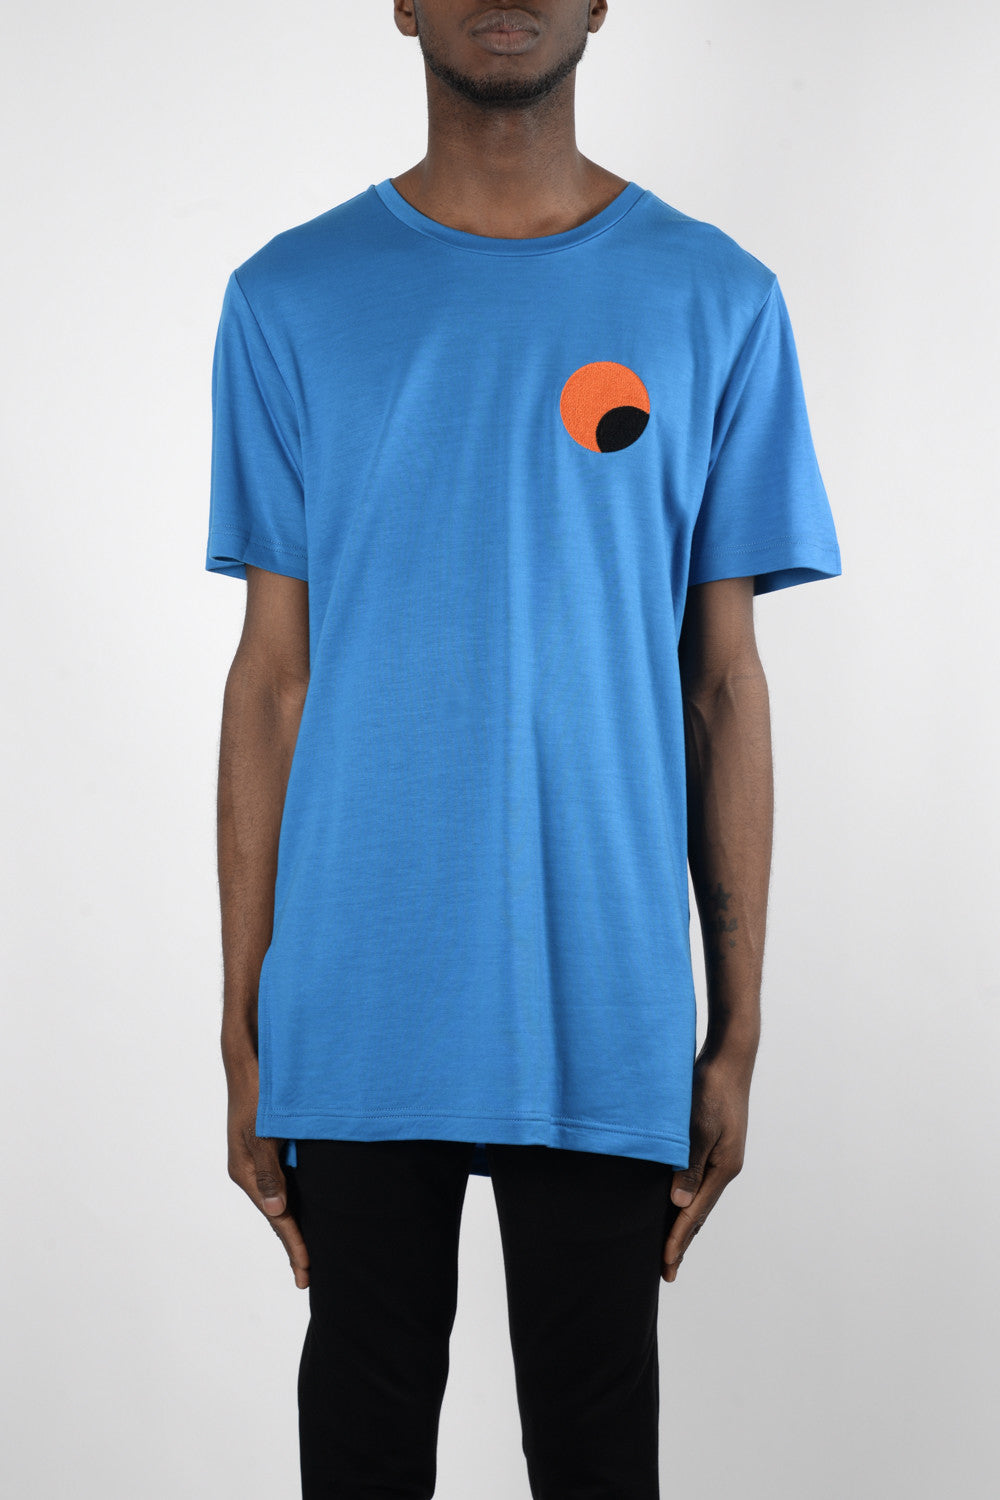 Rochambeau Sunset T-Shirt In Anita Blue